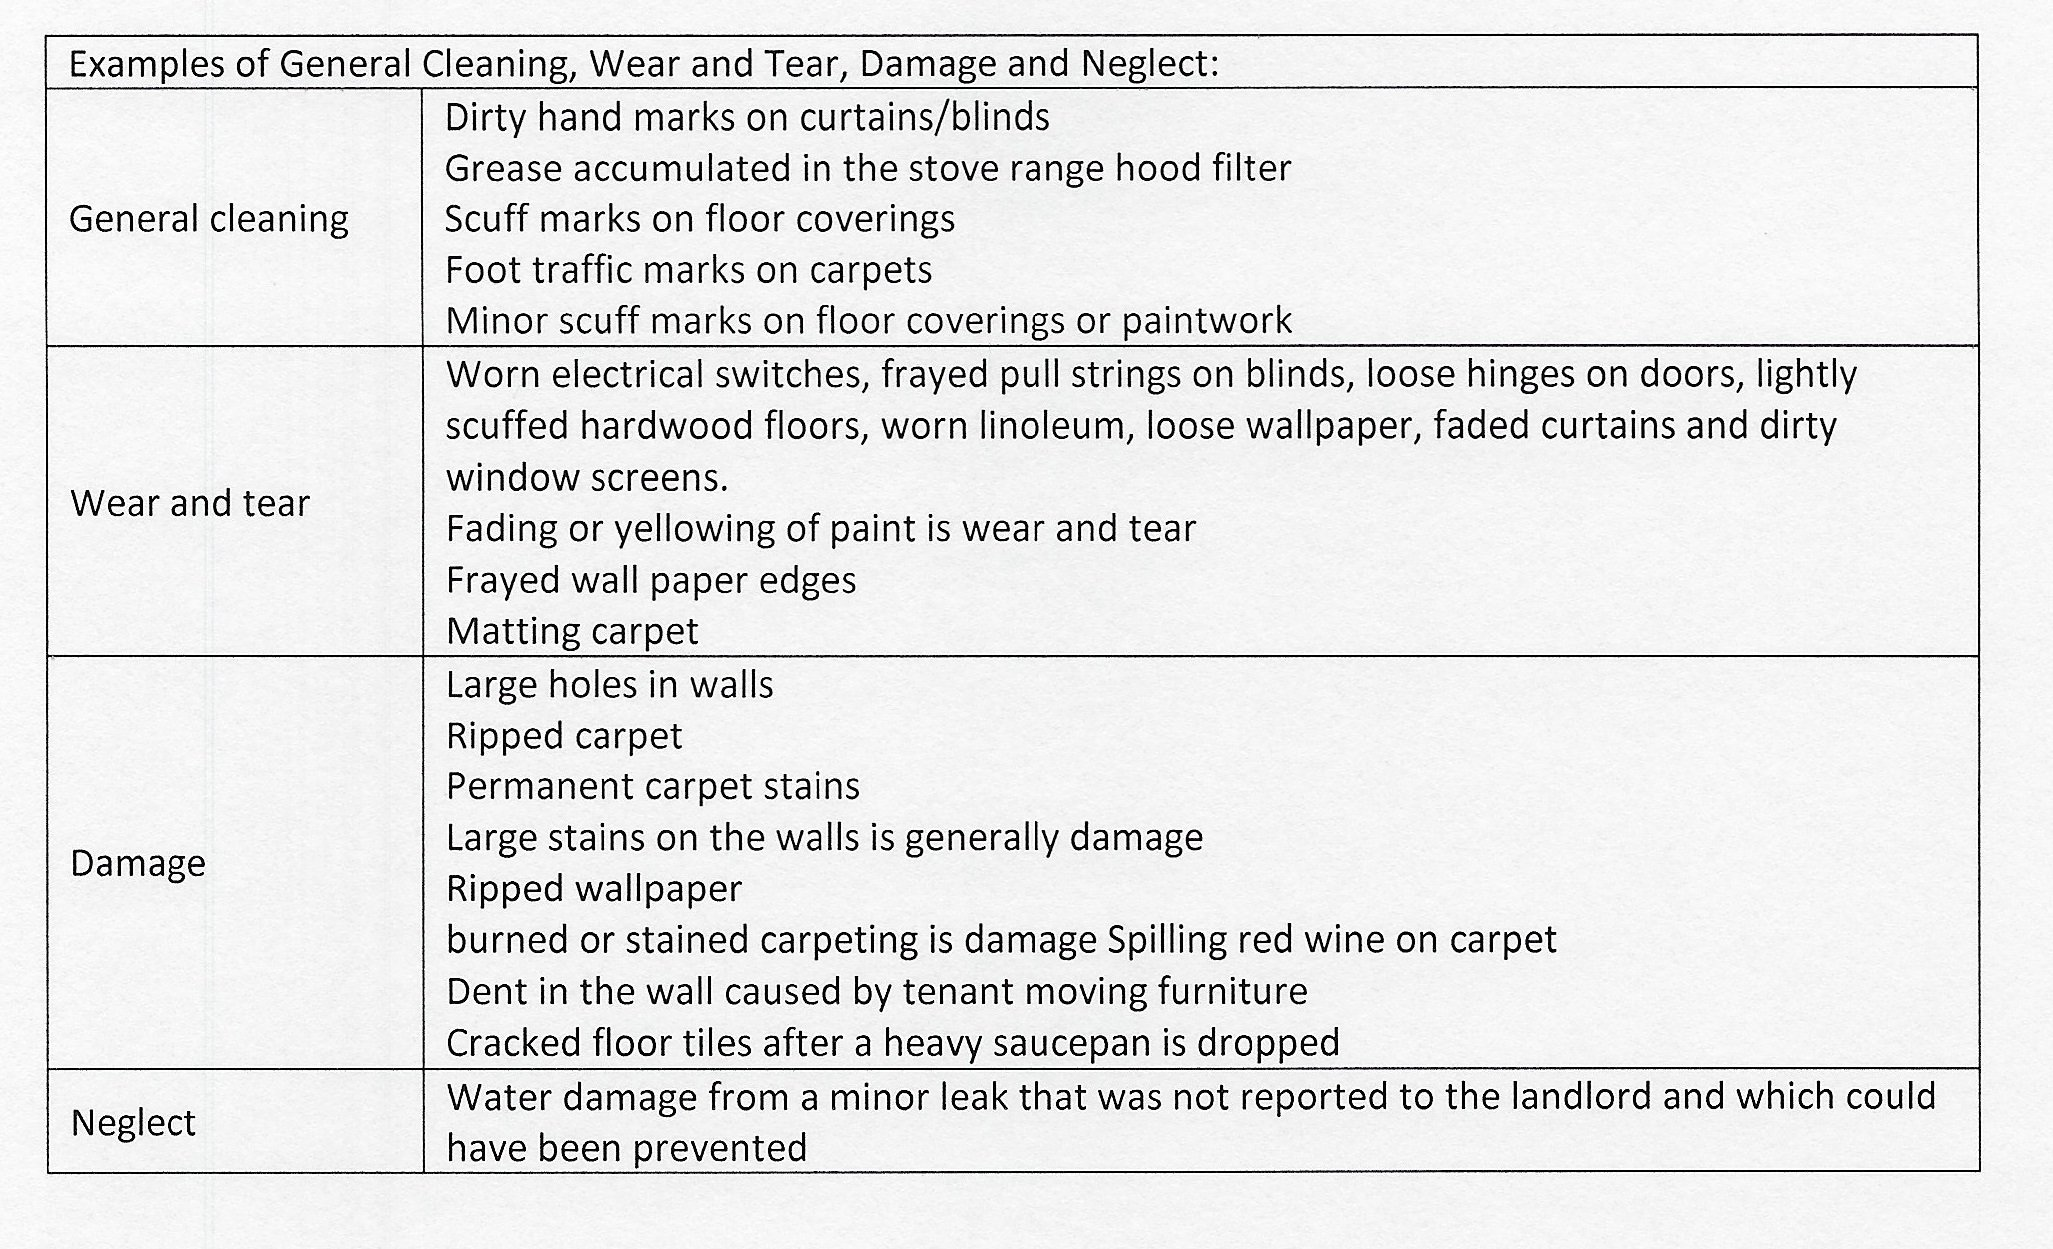 Comparing damage to normal wear and tear